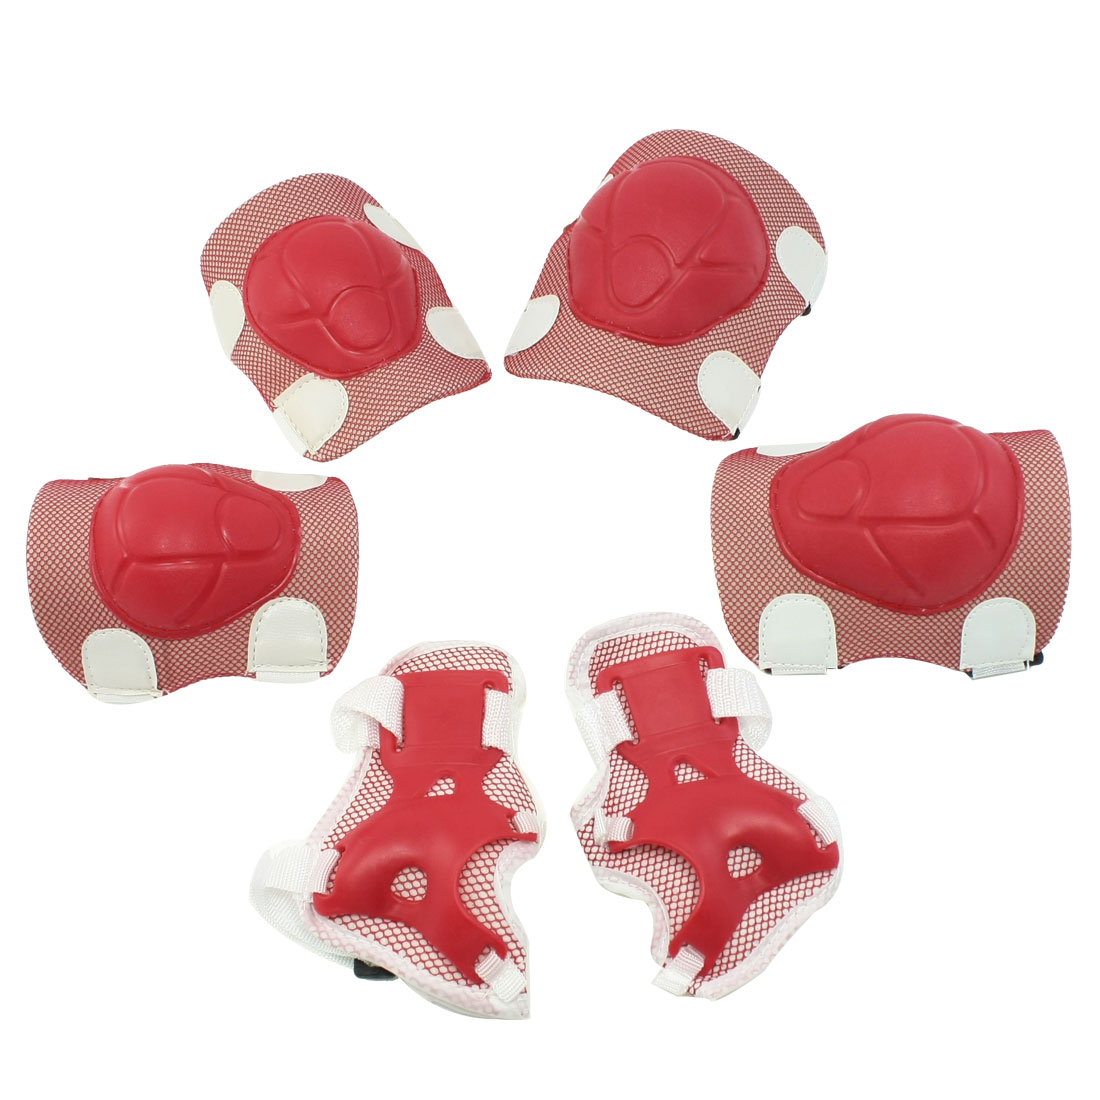 Set 6 in 1 Skiing Protective Palm Elbow Knee Support Pad White Red for